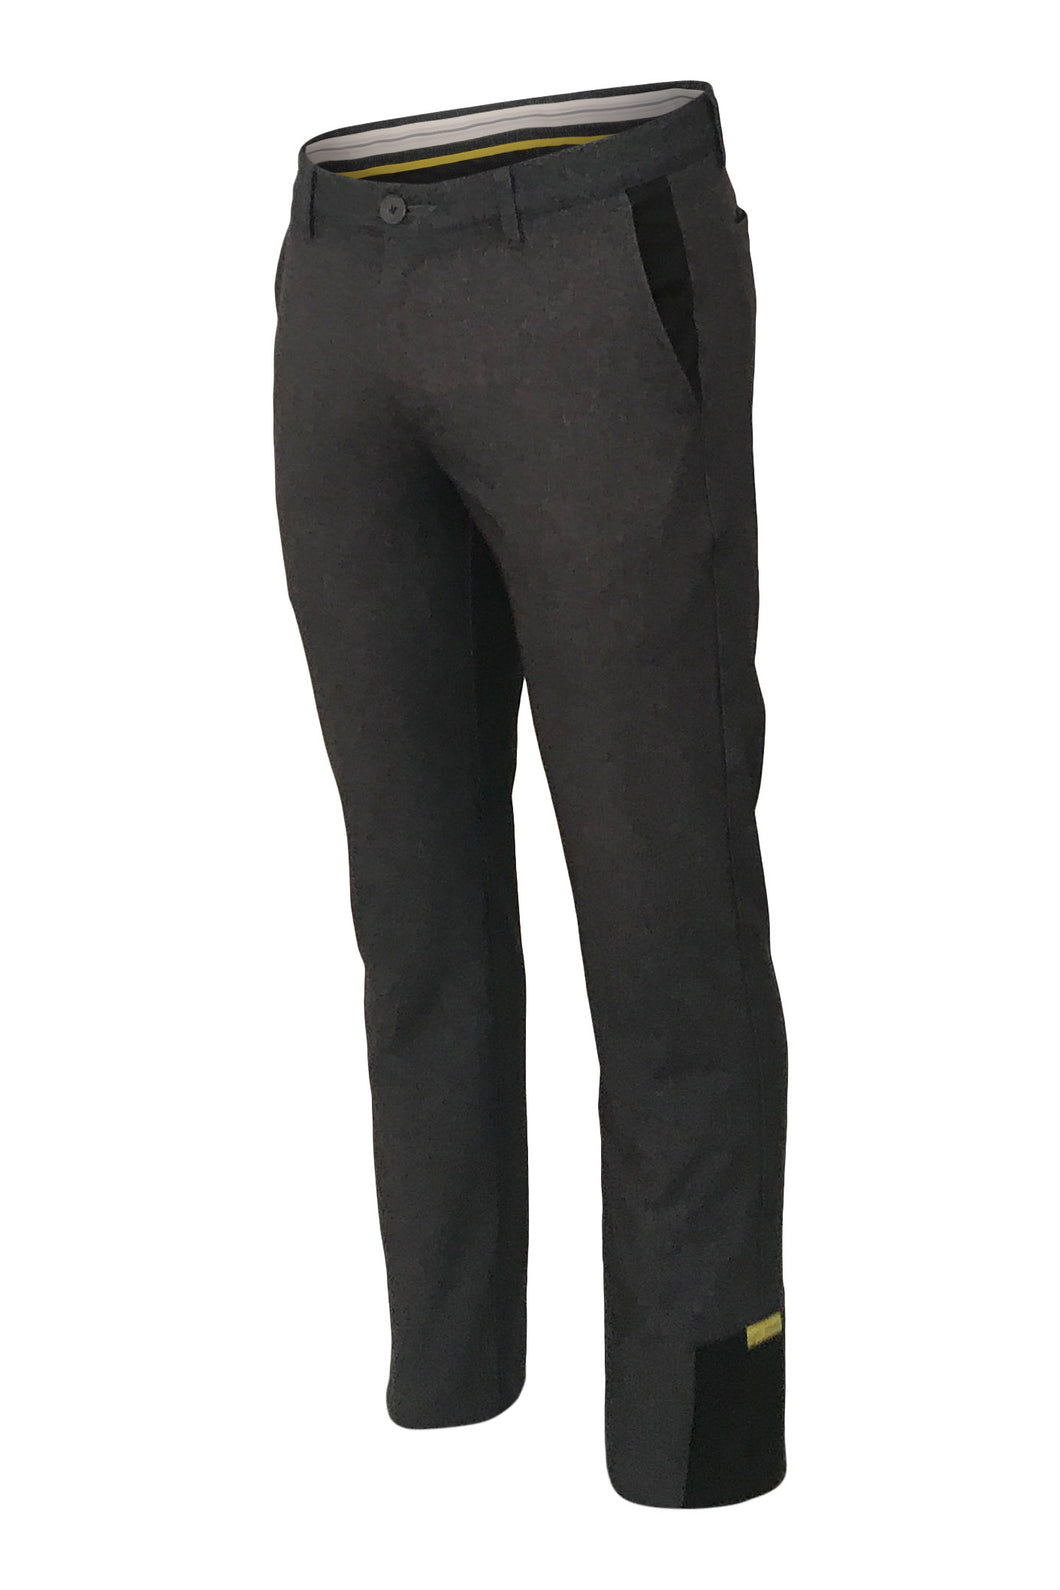 CLUBHOUSE PANTS PLUS - BLACK MELANGE